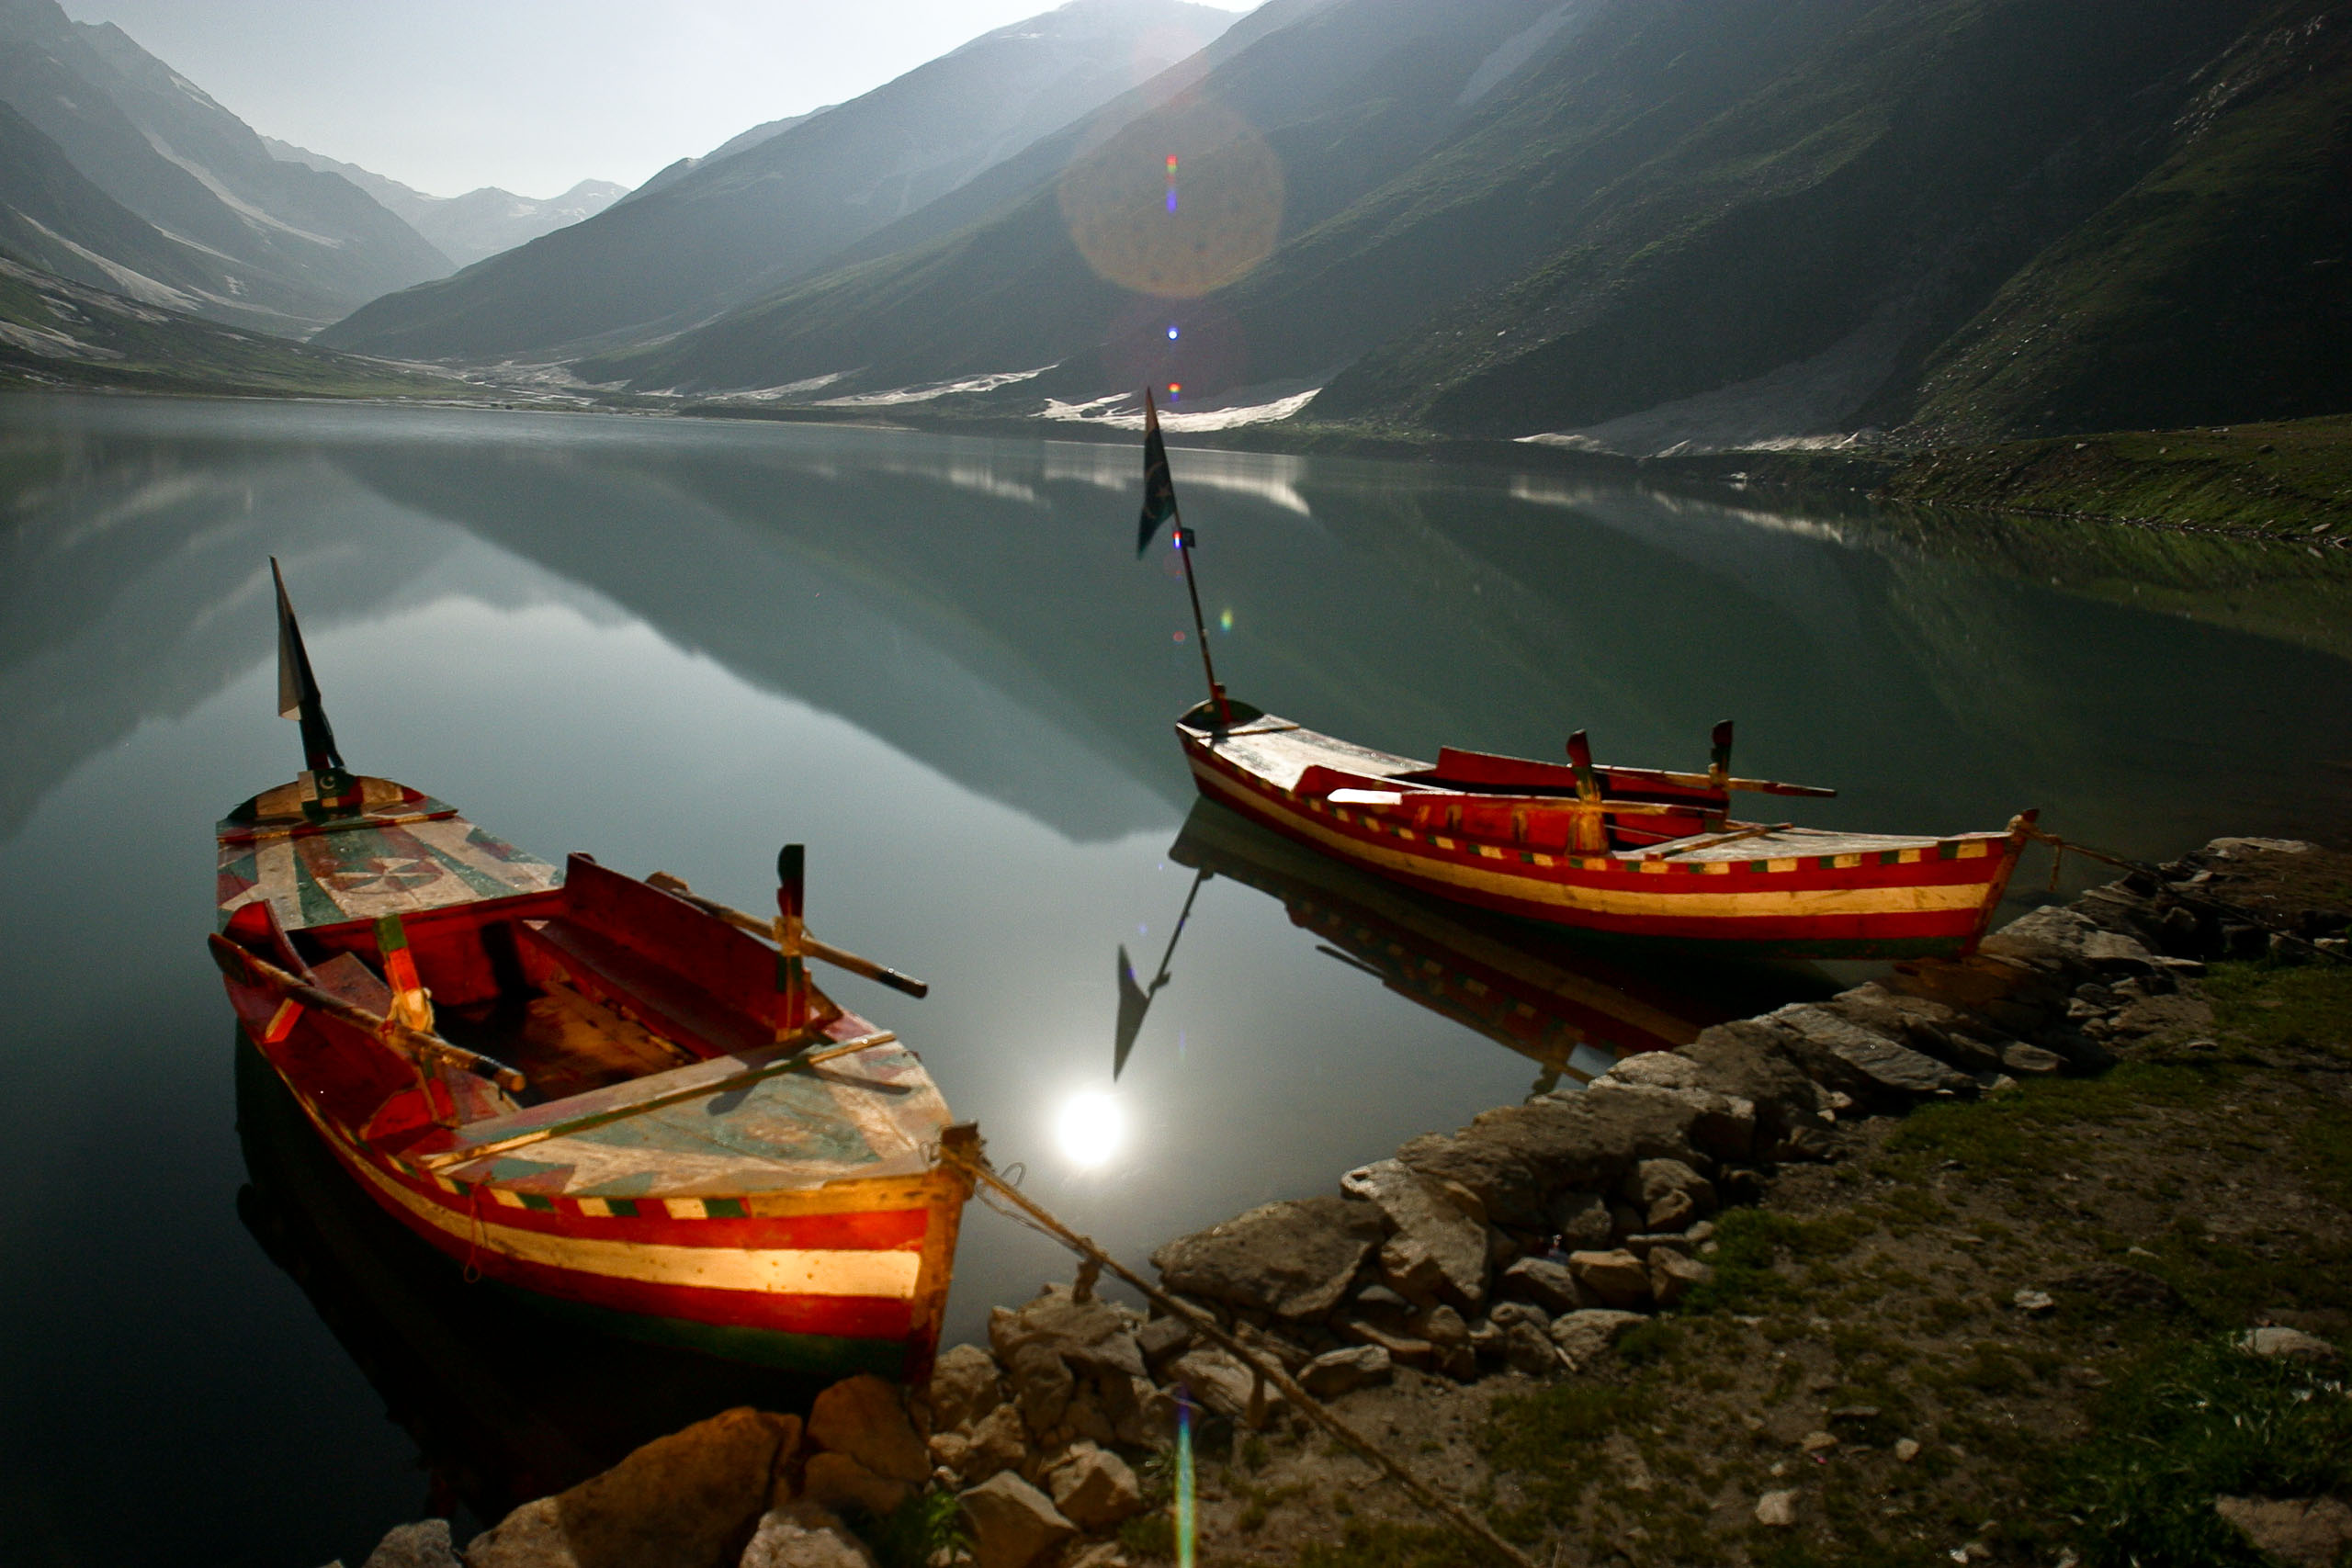 ... your own risk] to take you around the fairyland called Saif-ul-Malook